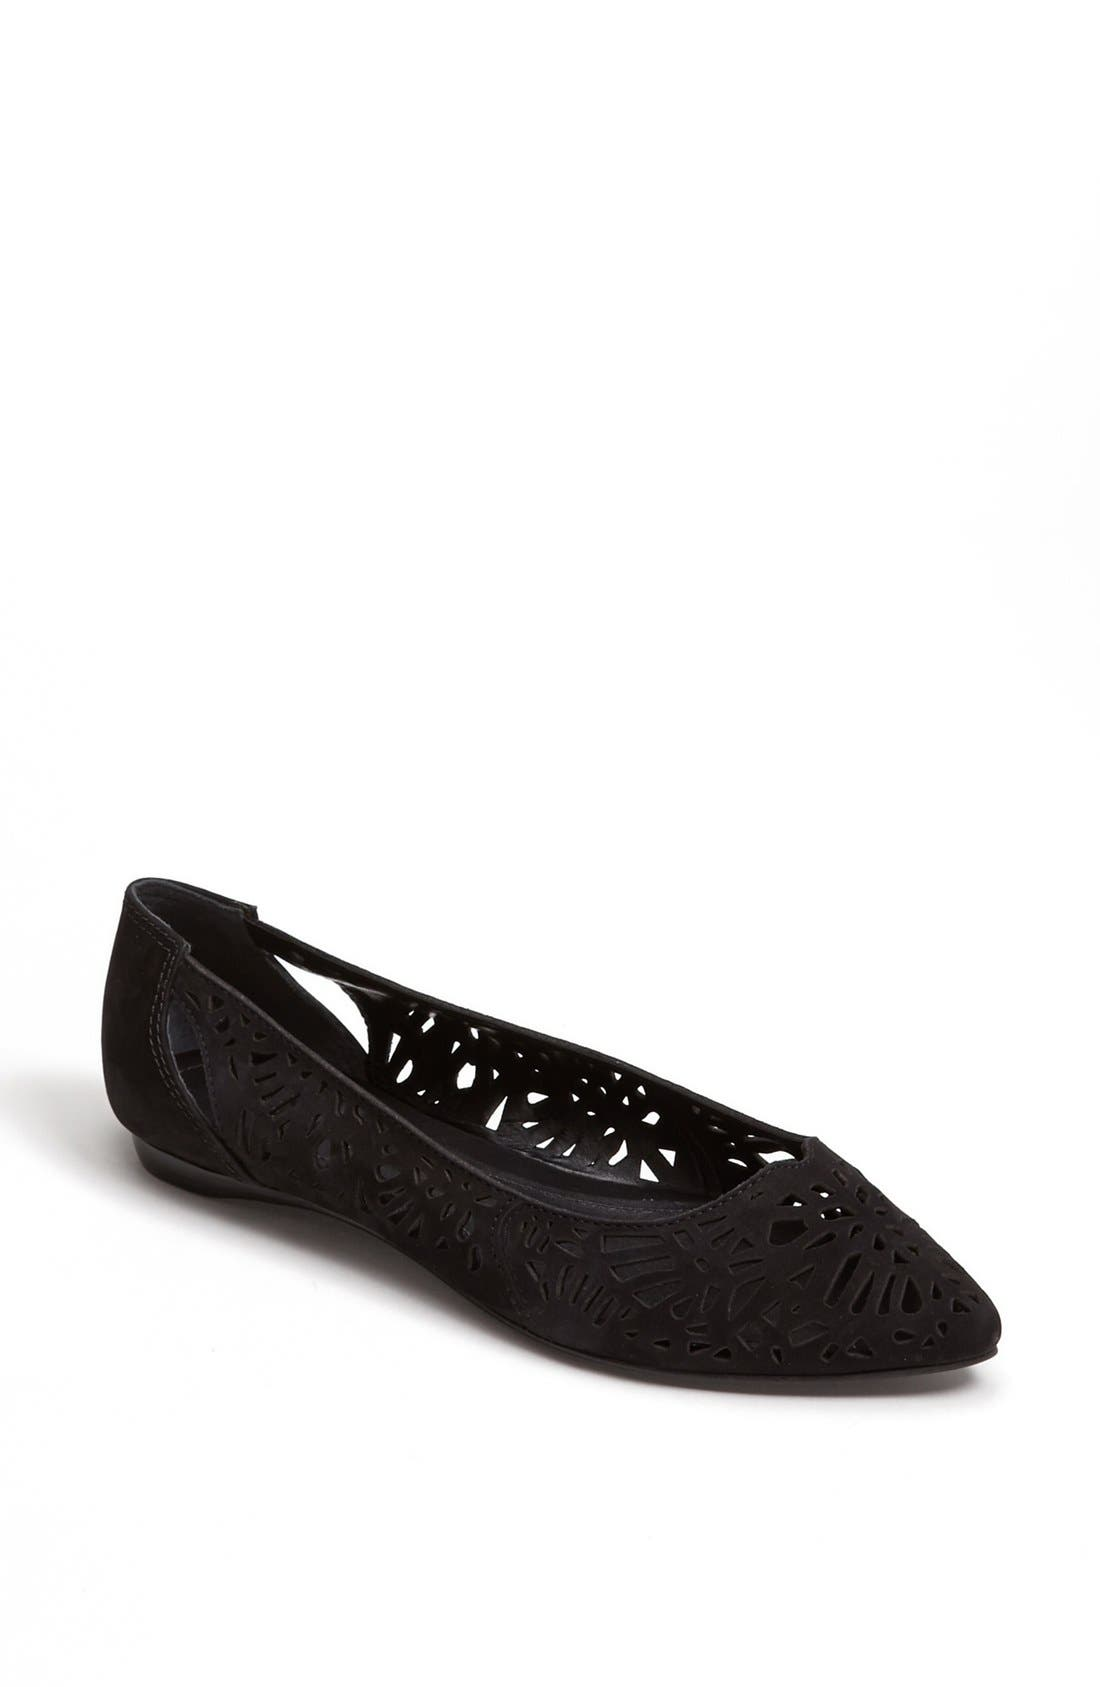 'Cicely' Perforated Flat,                         Main,                         color,